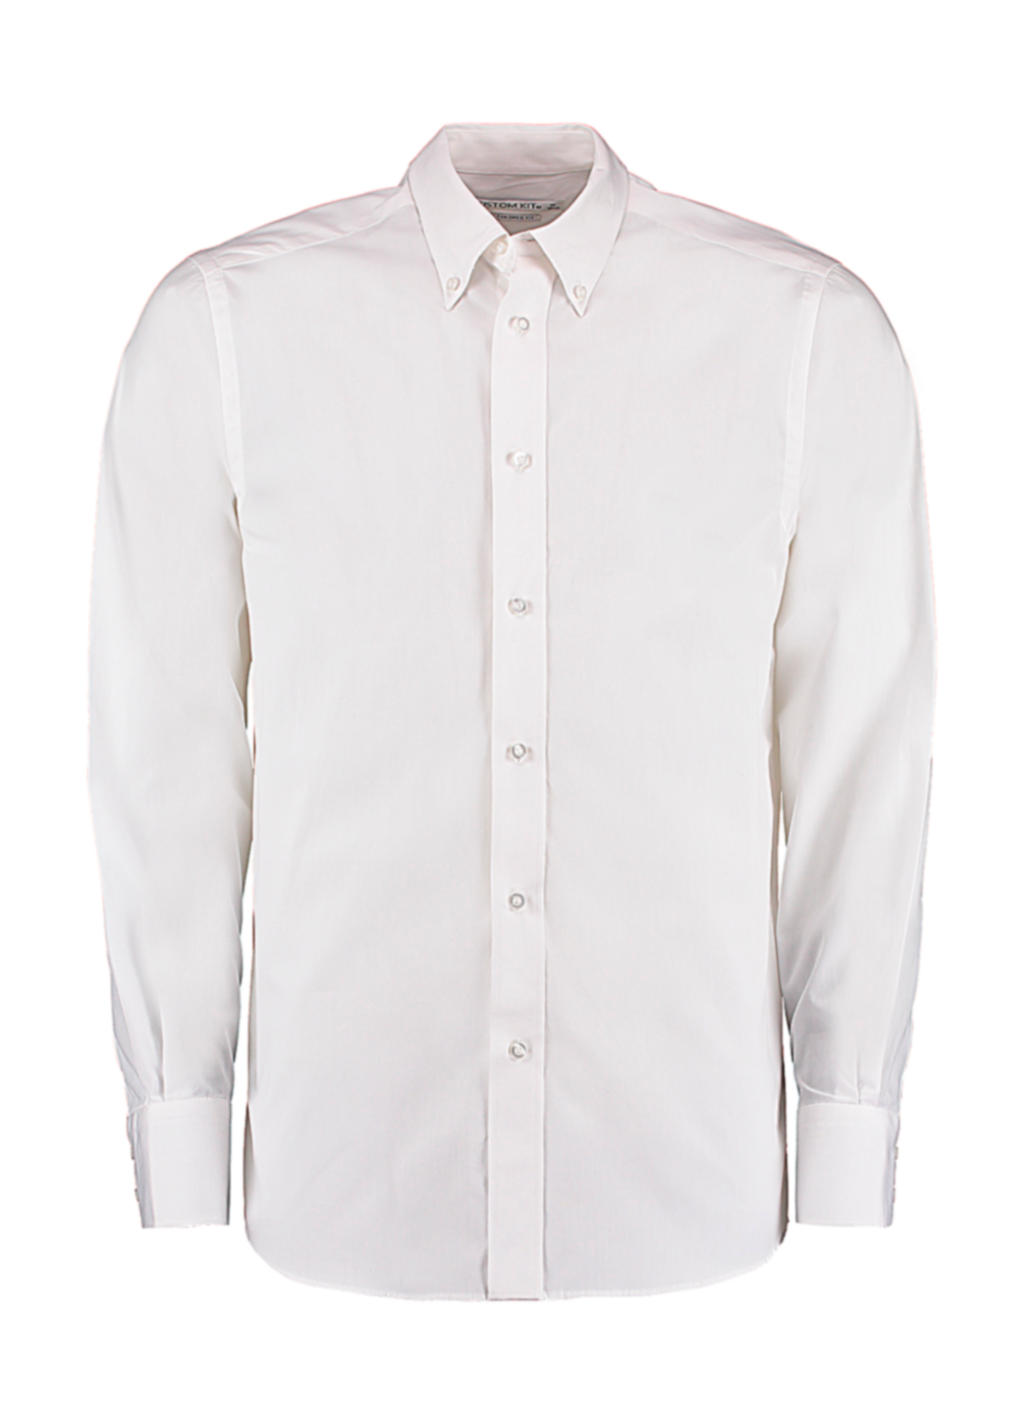 City Business Shirt LS